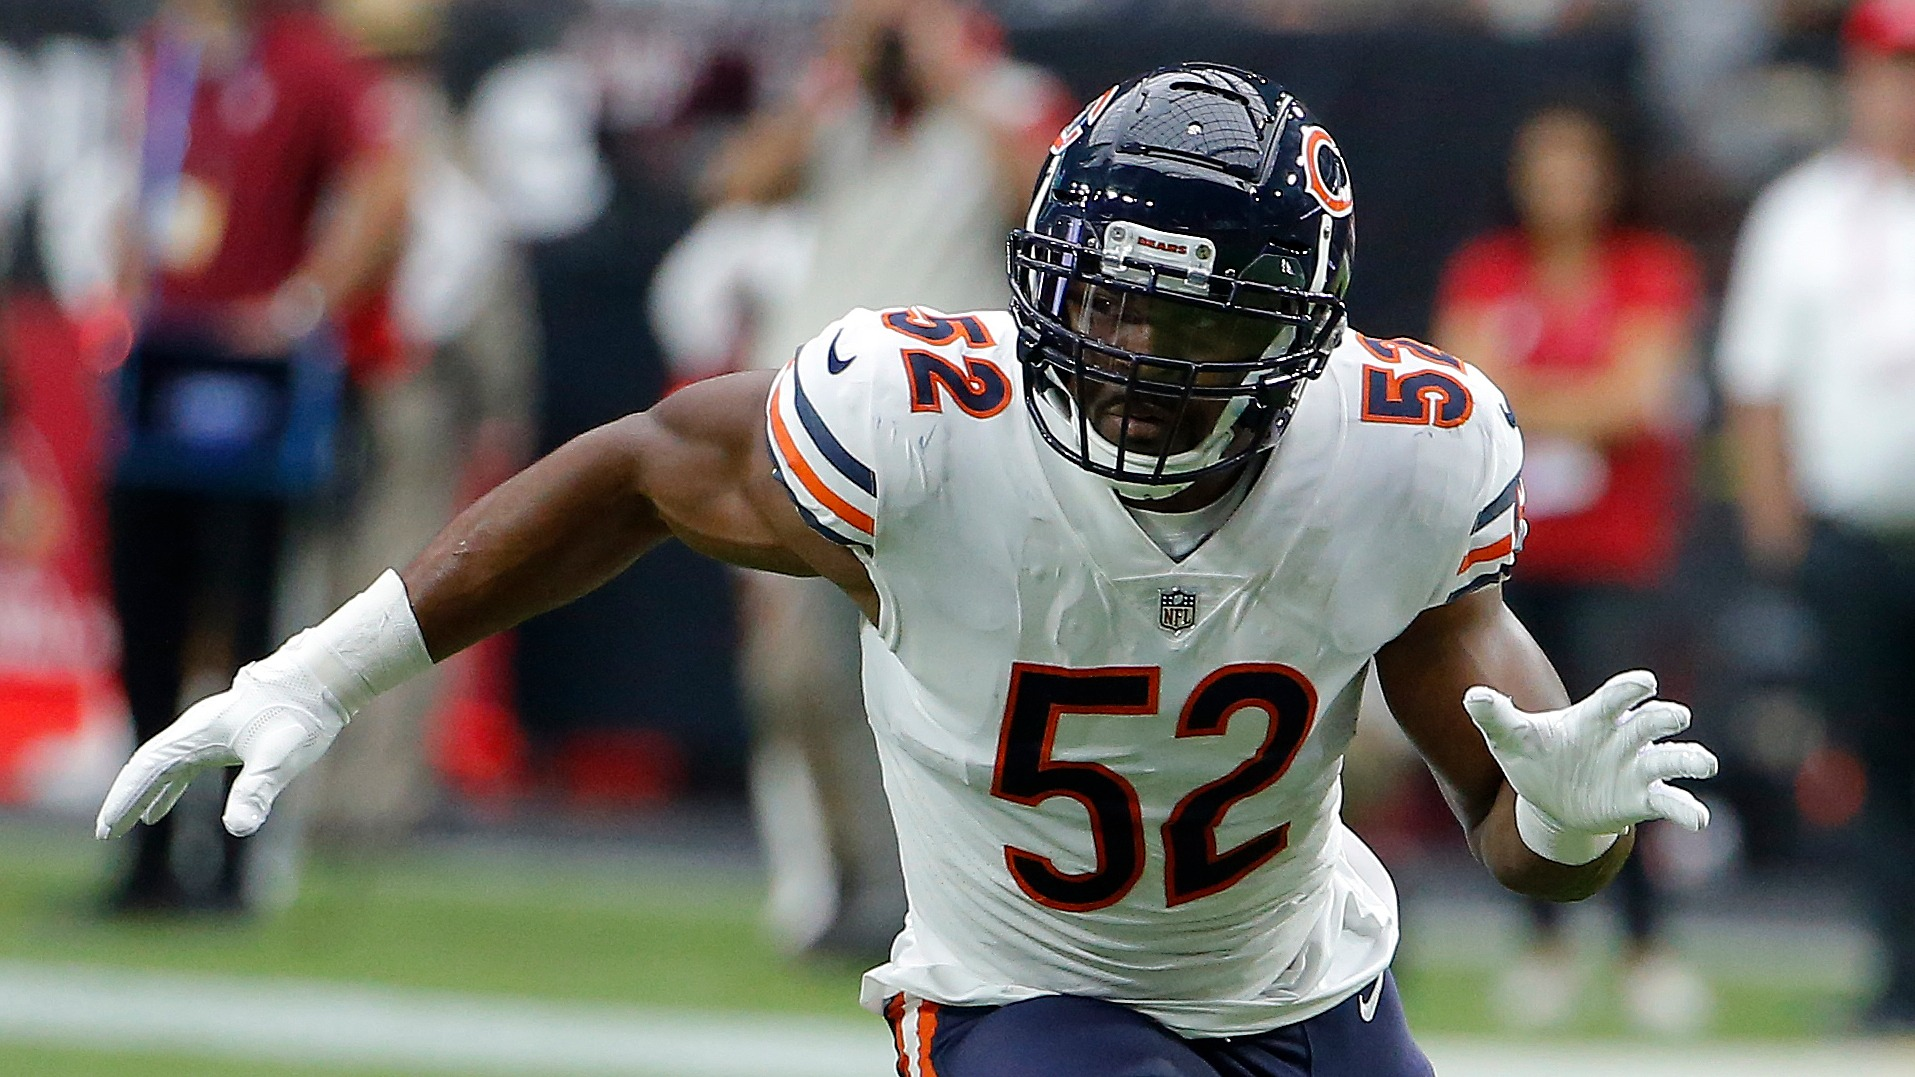 f3d6153c7d4 Buccaneers vs. Bears betting lines and preview: Spread shifts toward ...